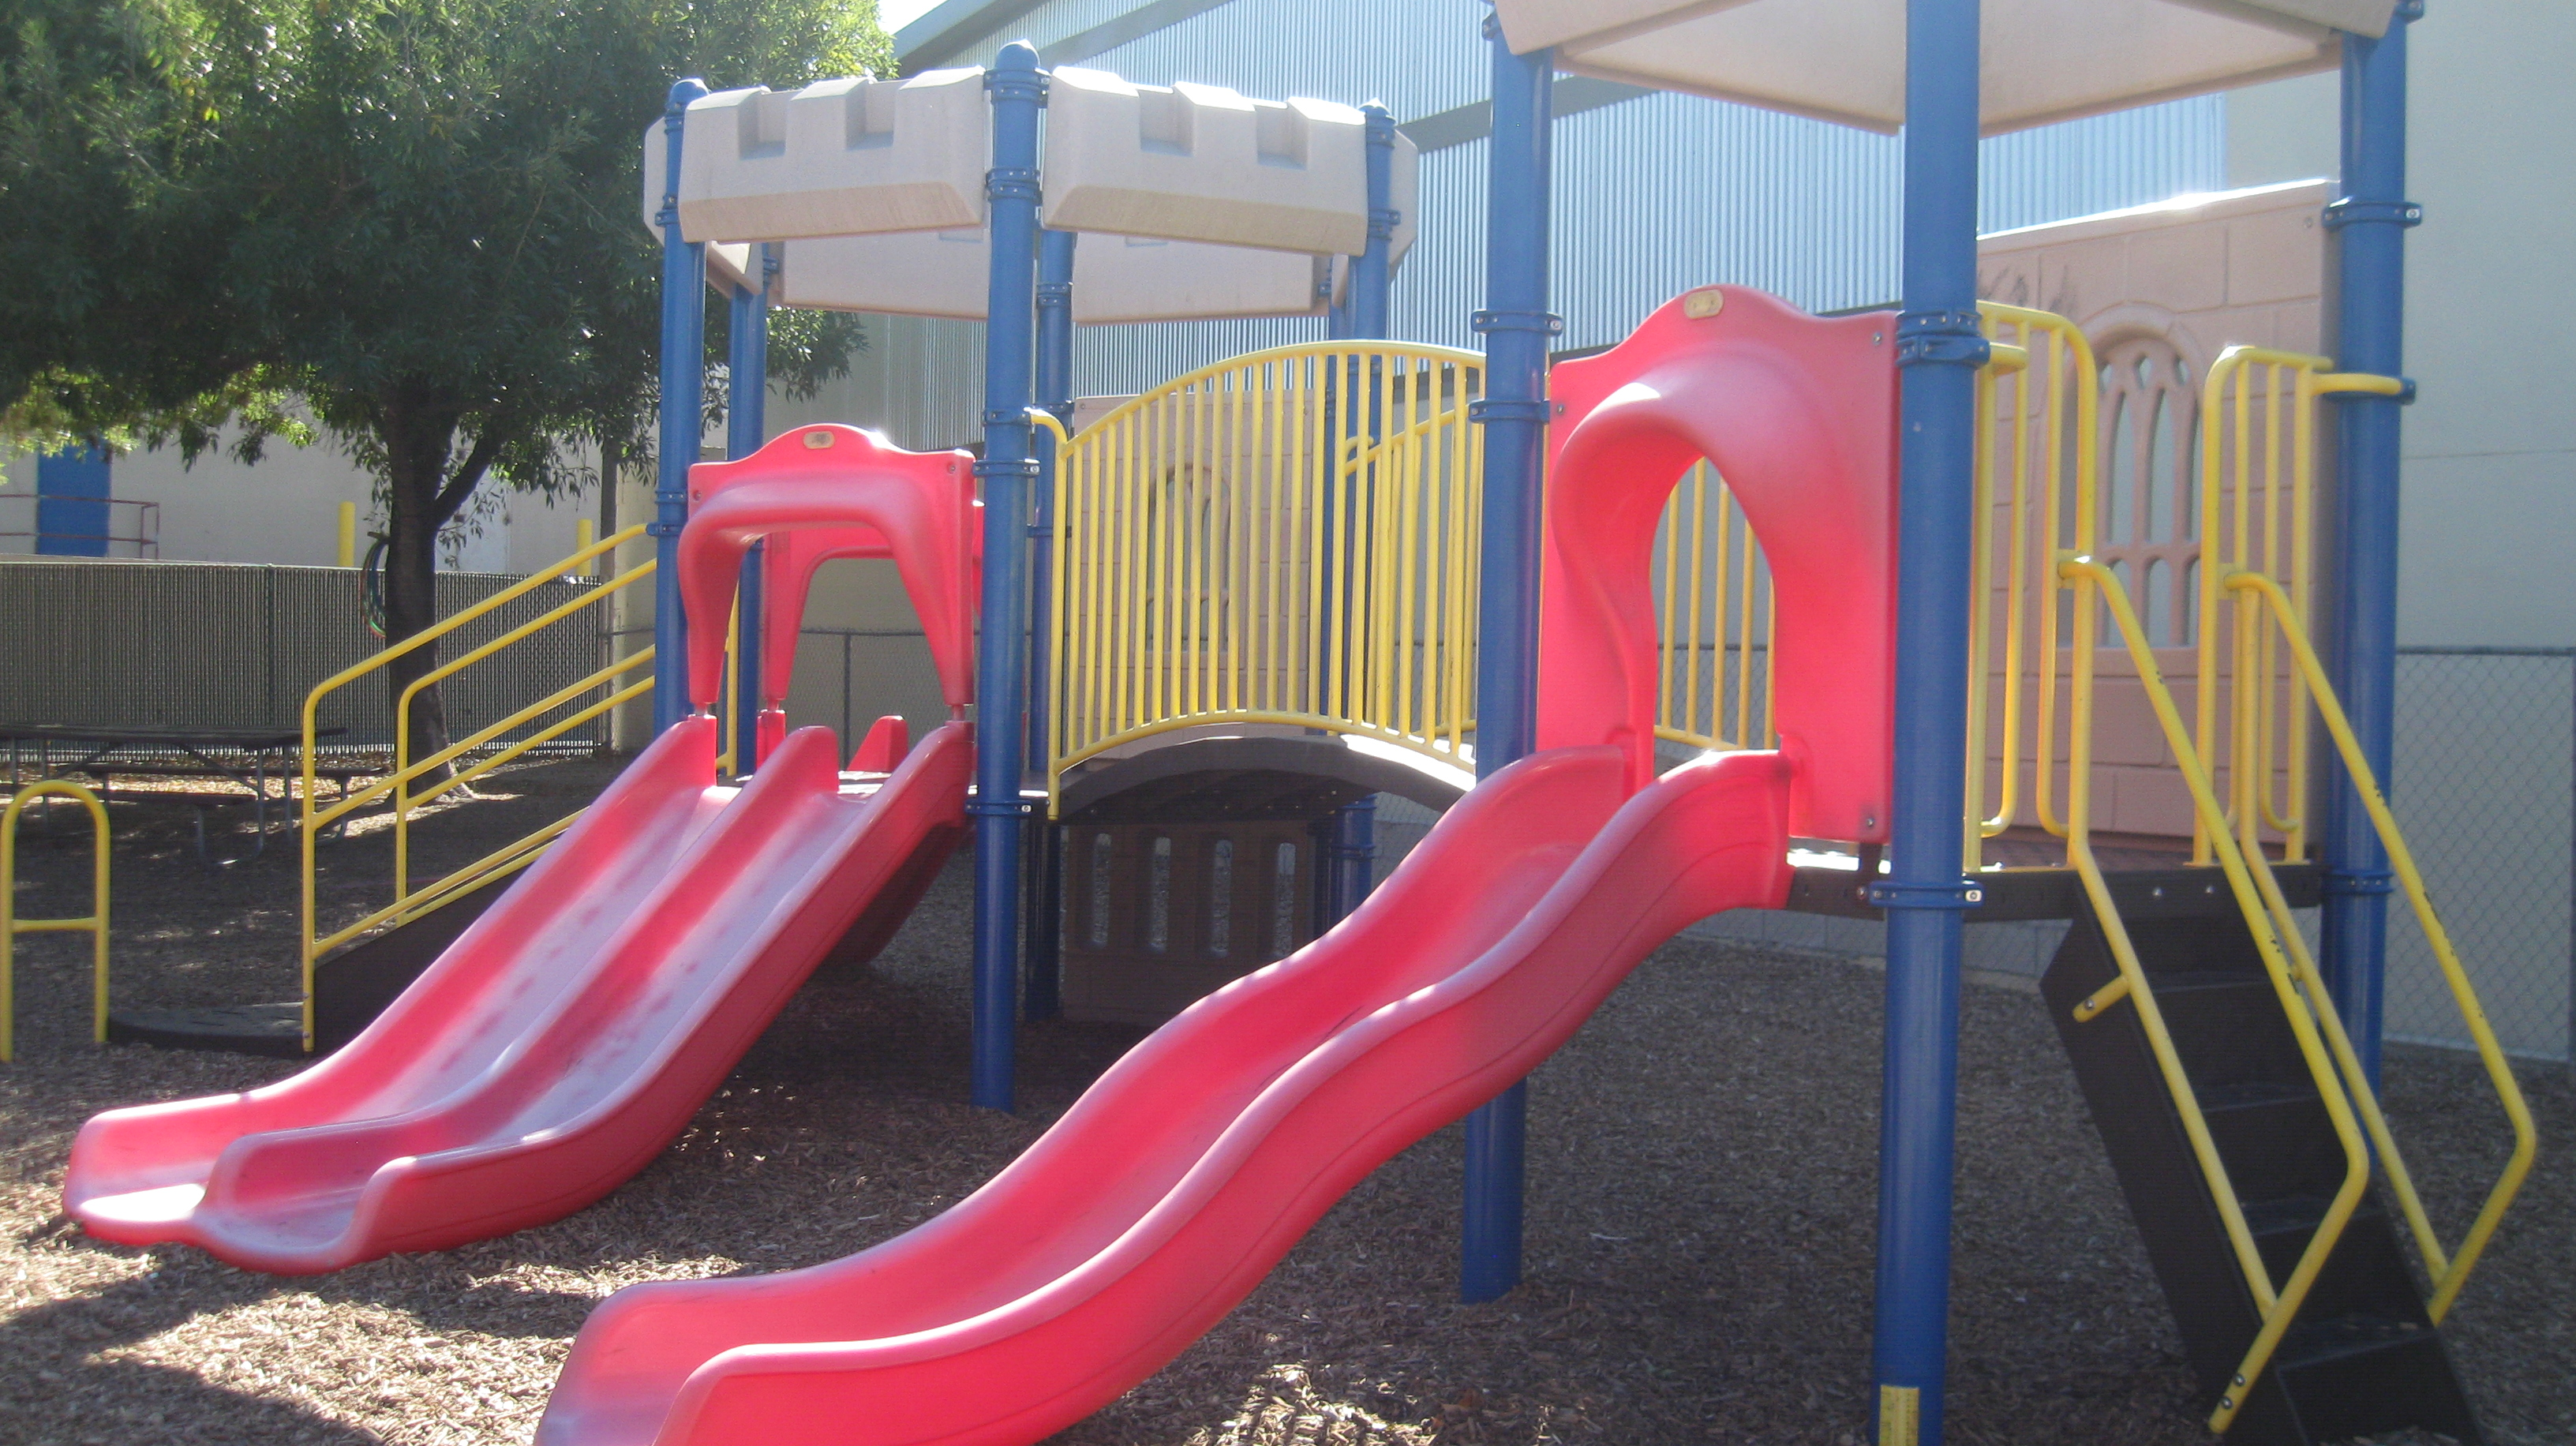 Parliament Kindercare Daycare Preschool Amp Early